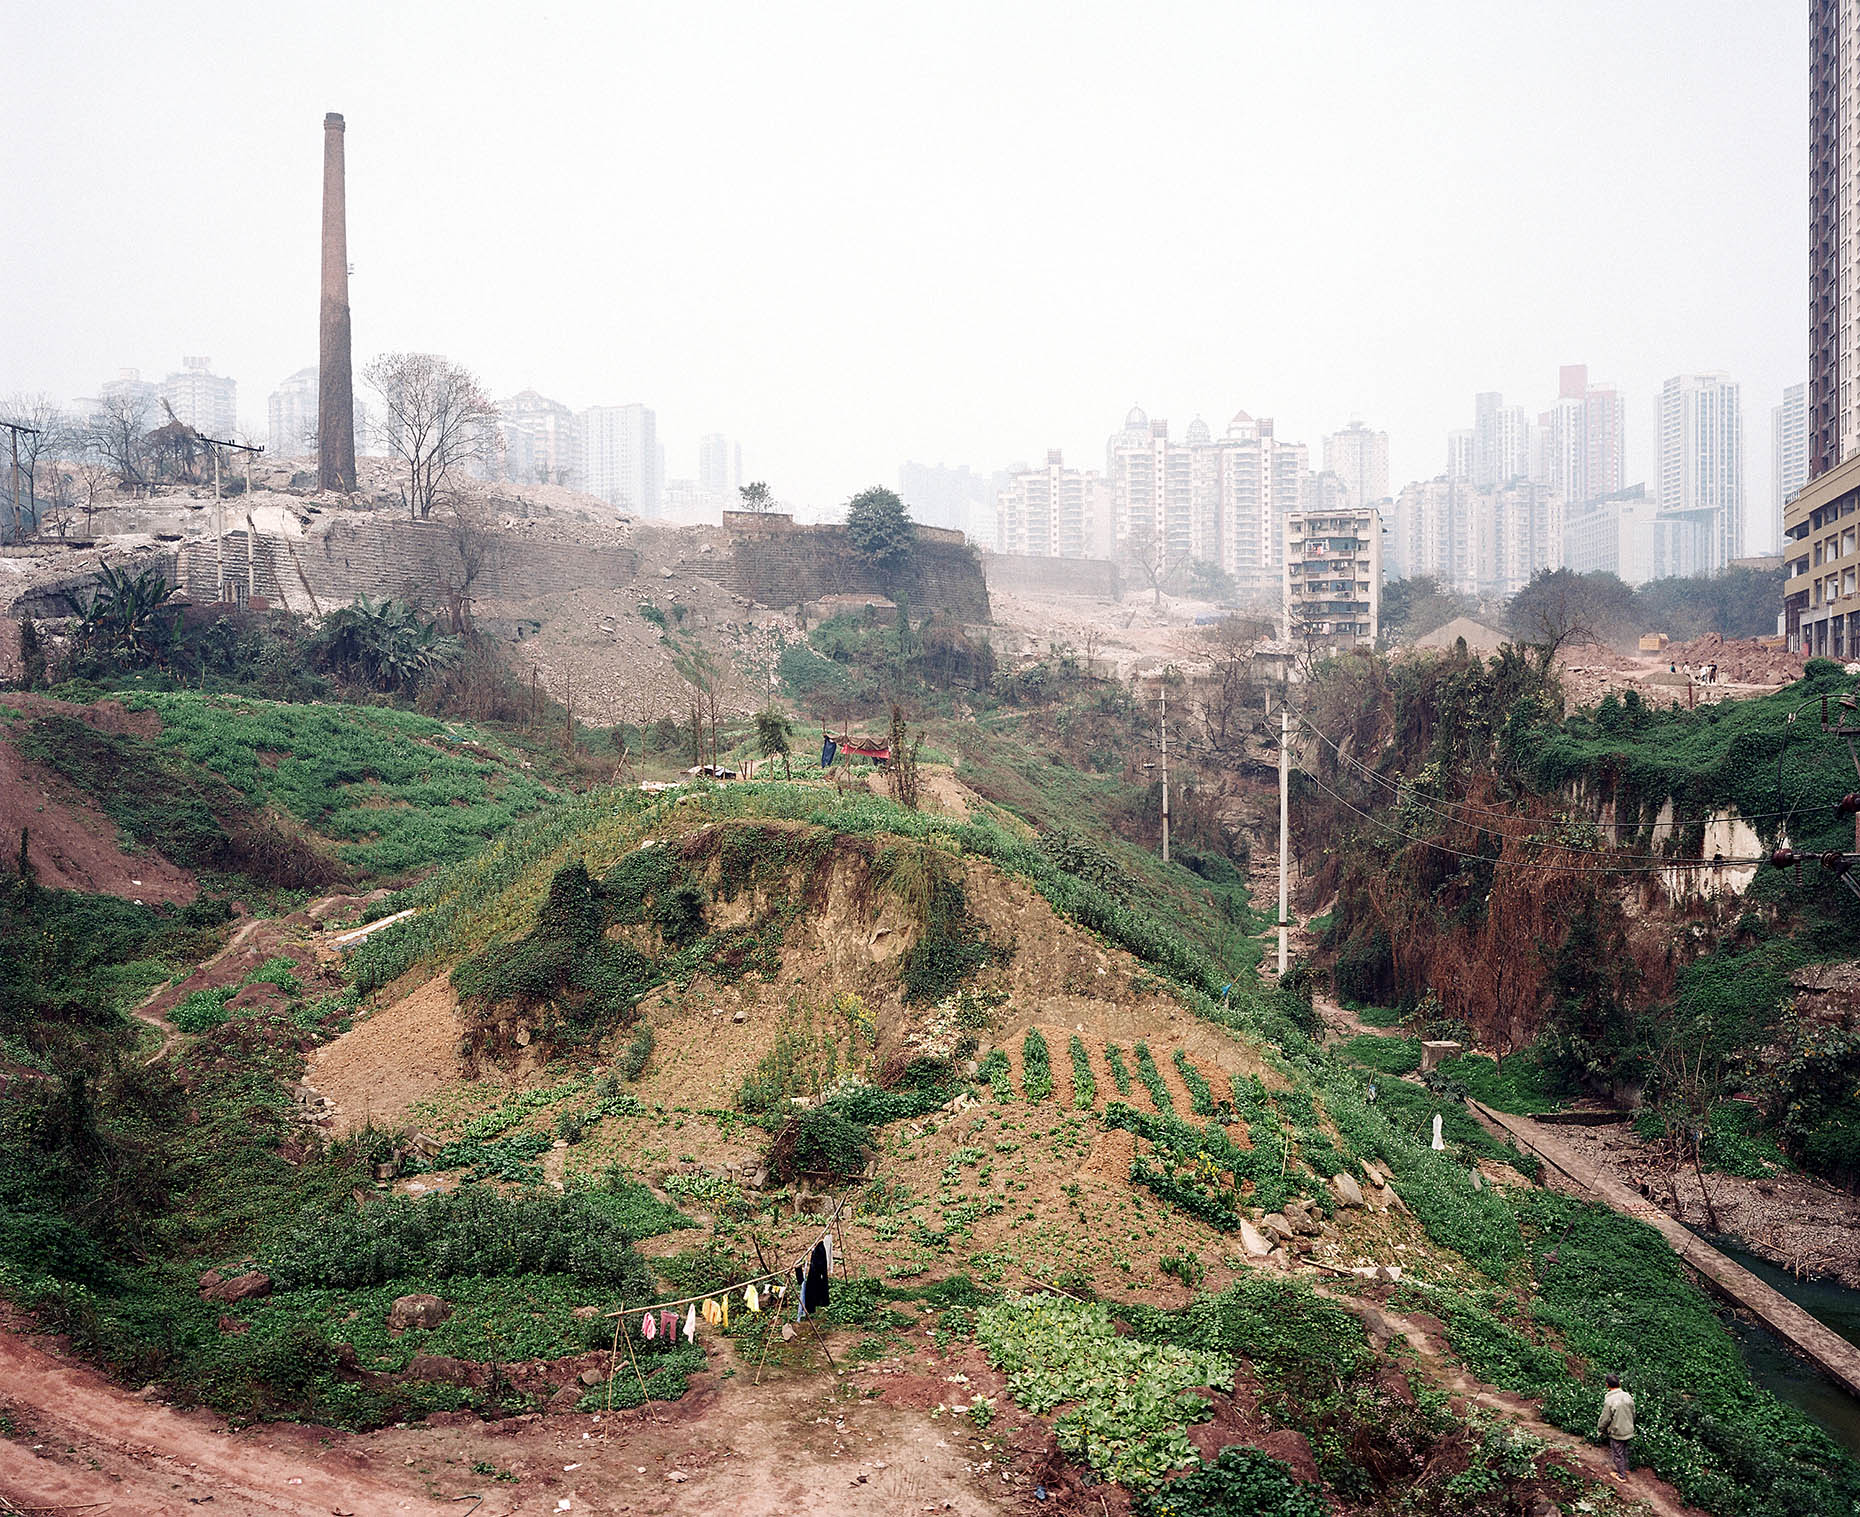 China urbanization landscape photography